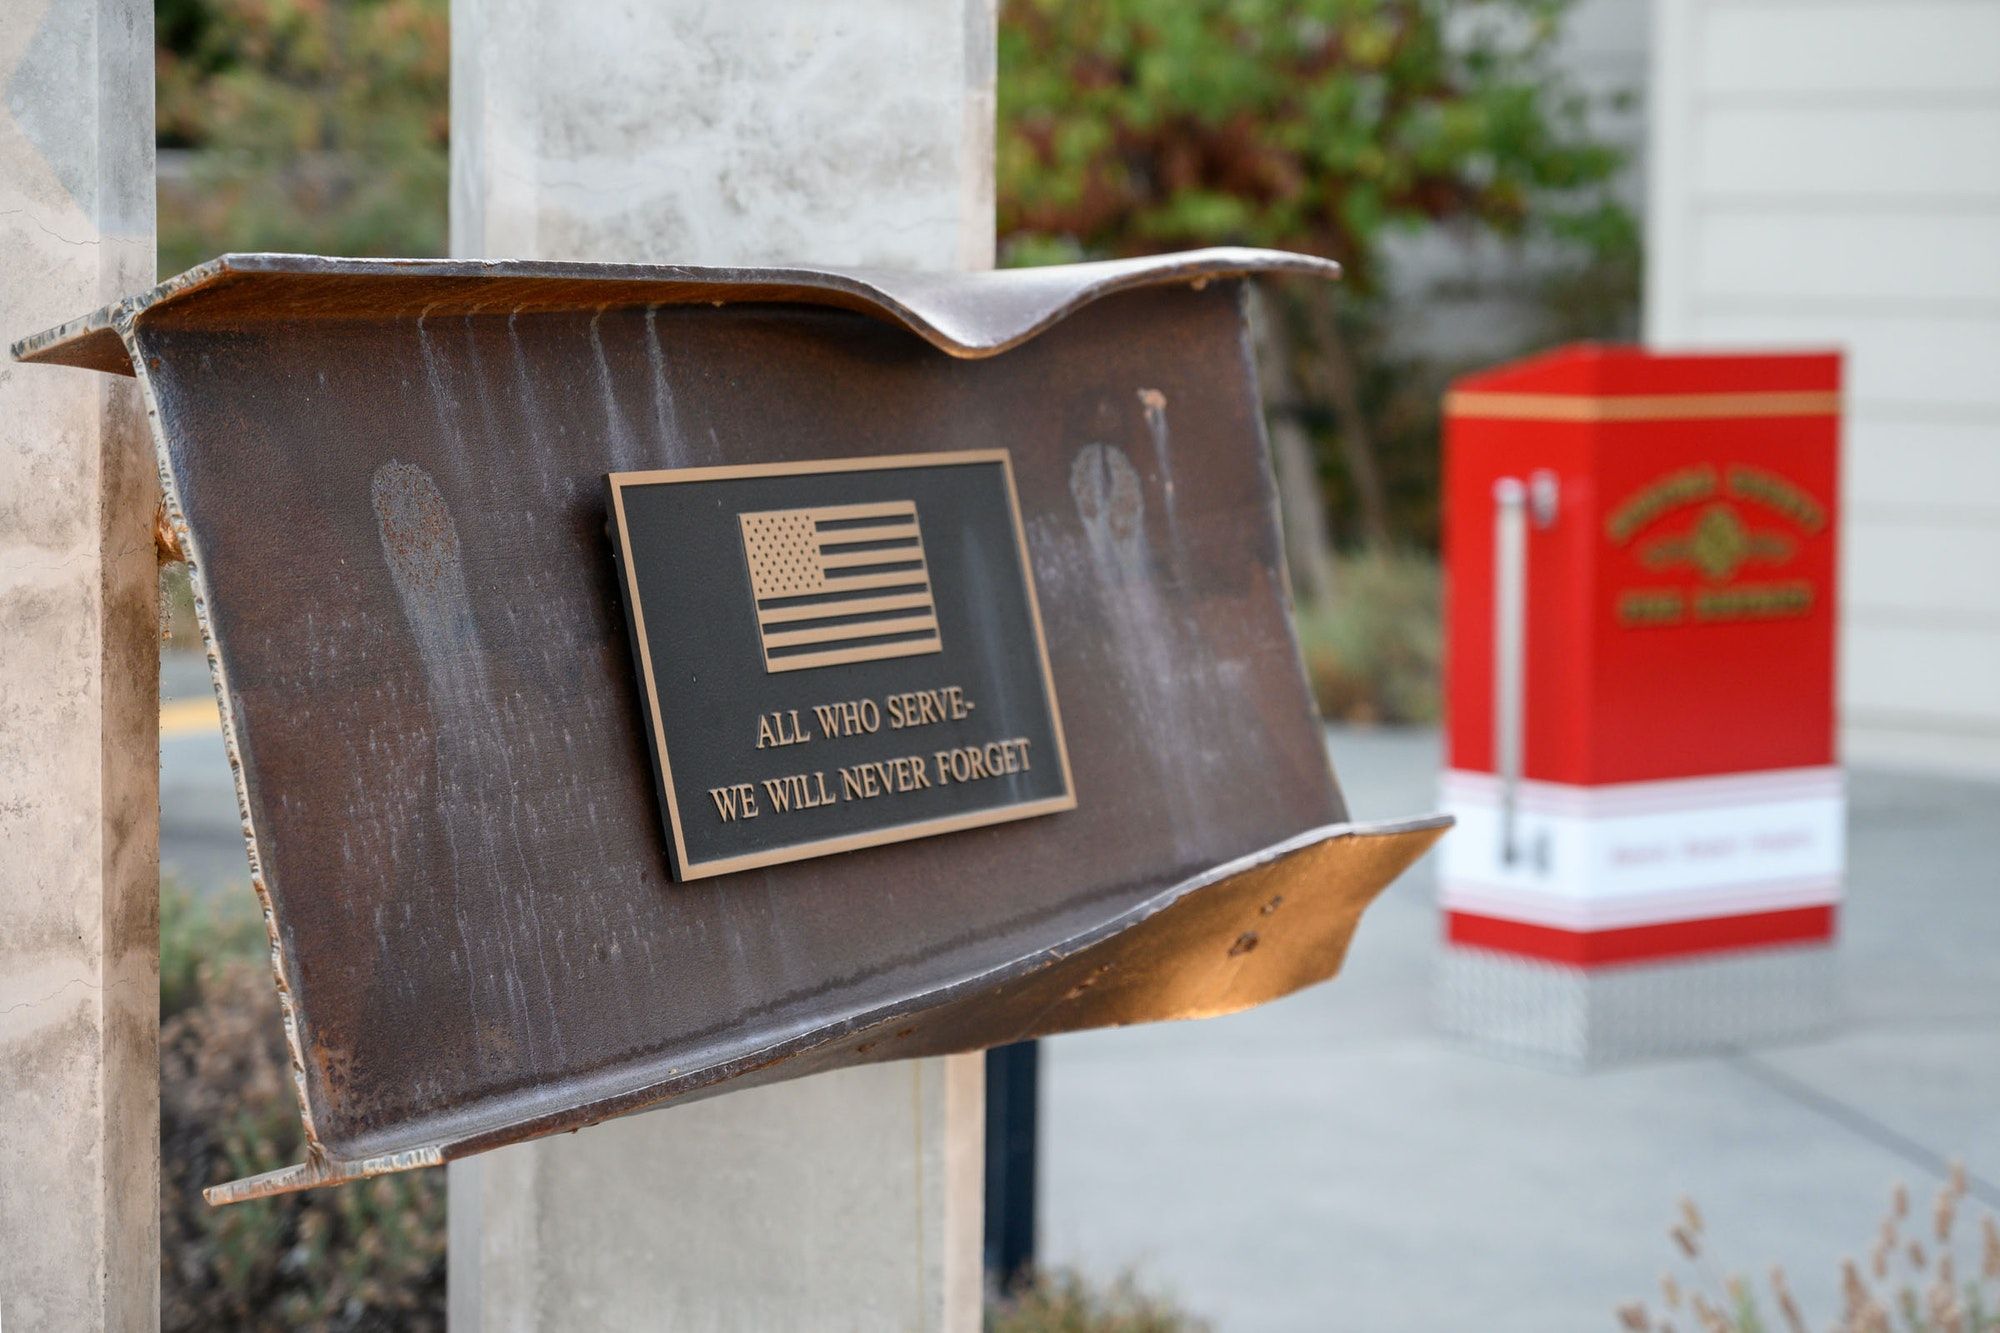 May contain: mailbox and letterbox